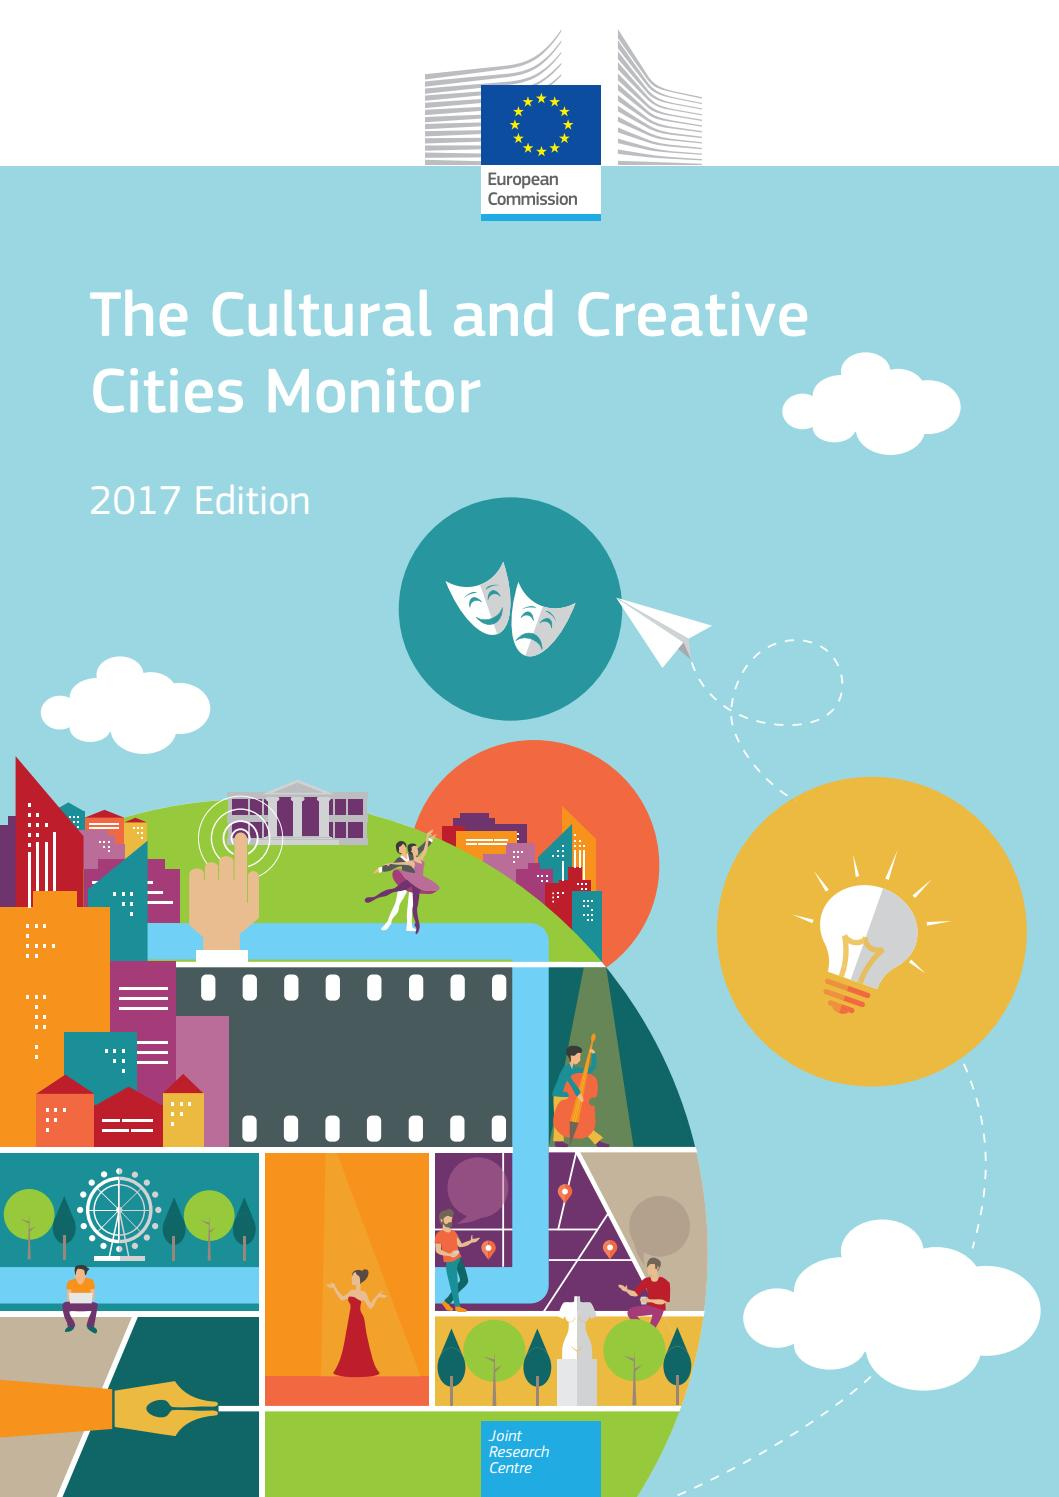 The cultural and creative cities monitor by A Blue Drum